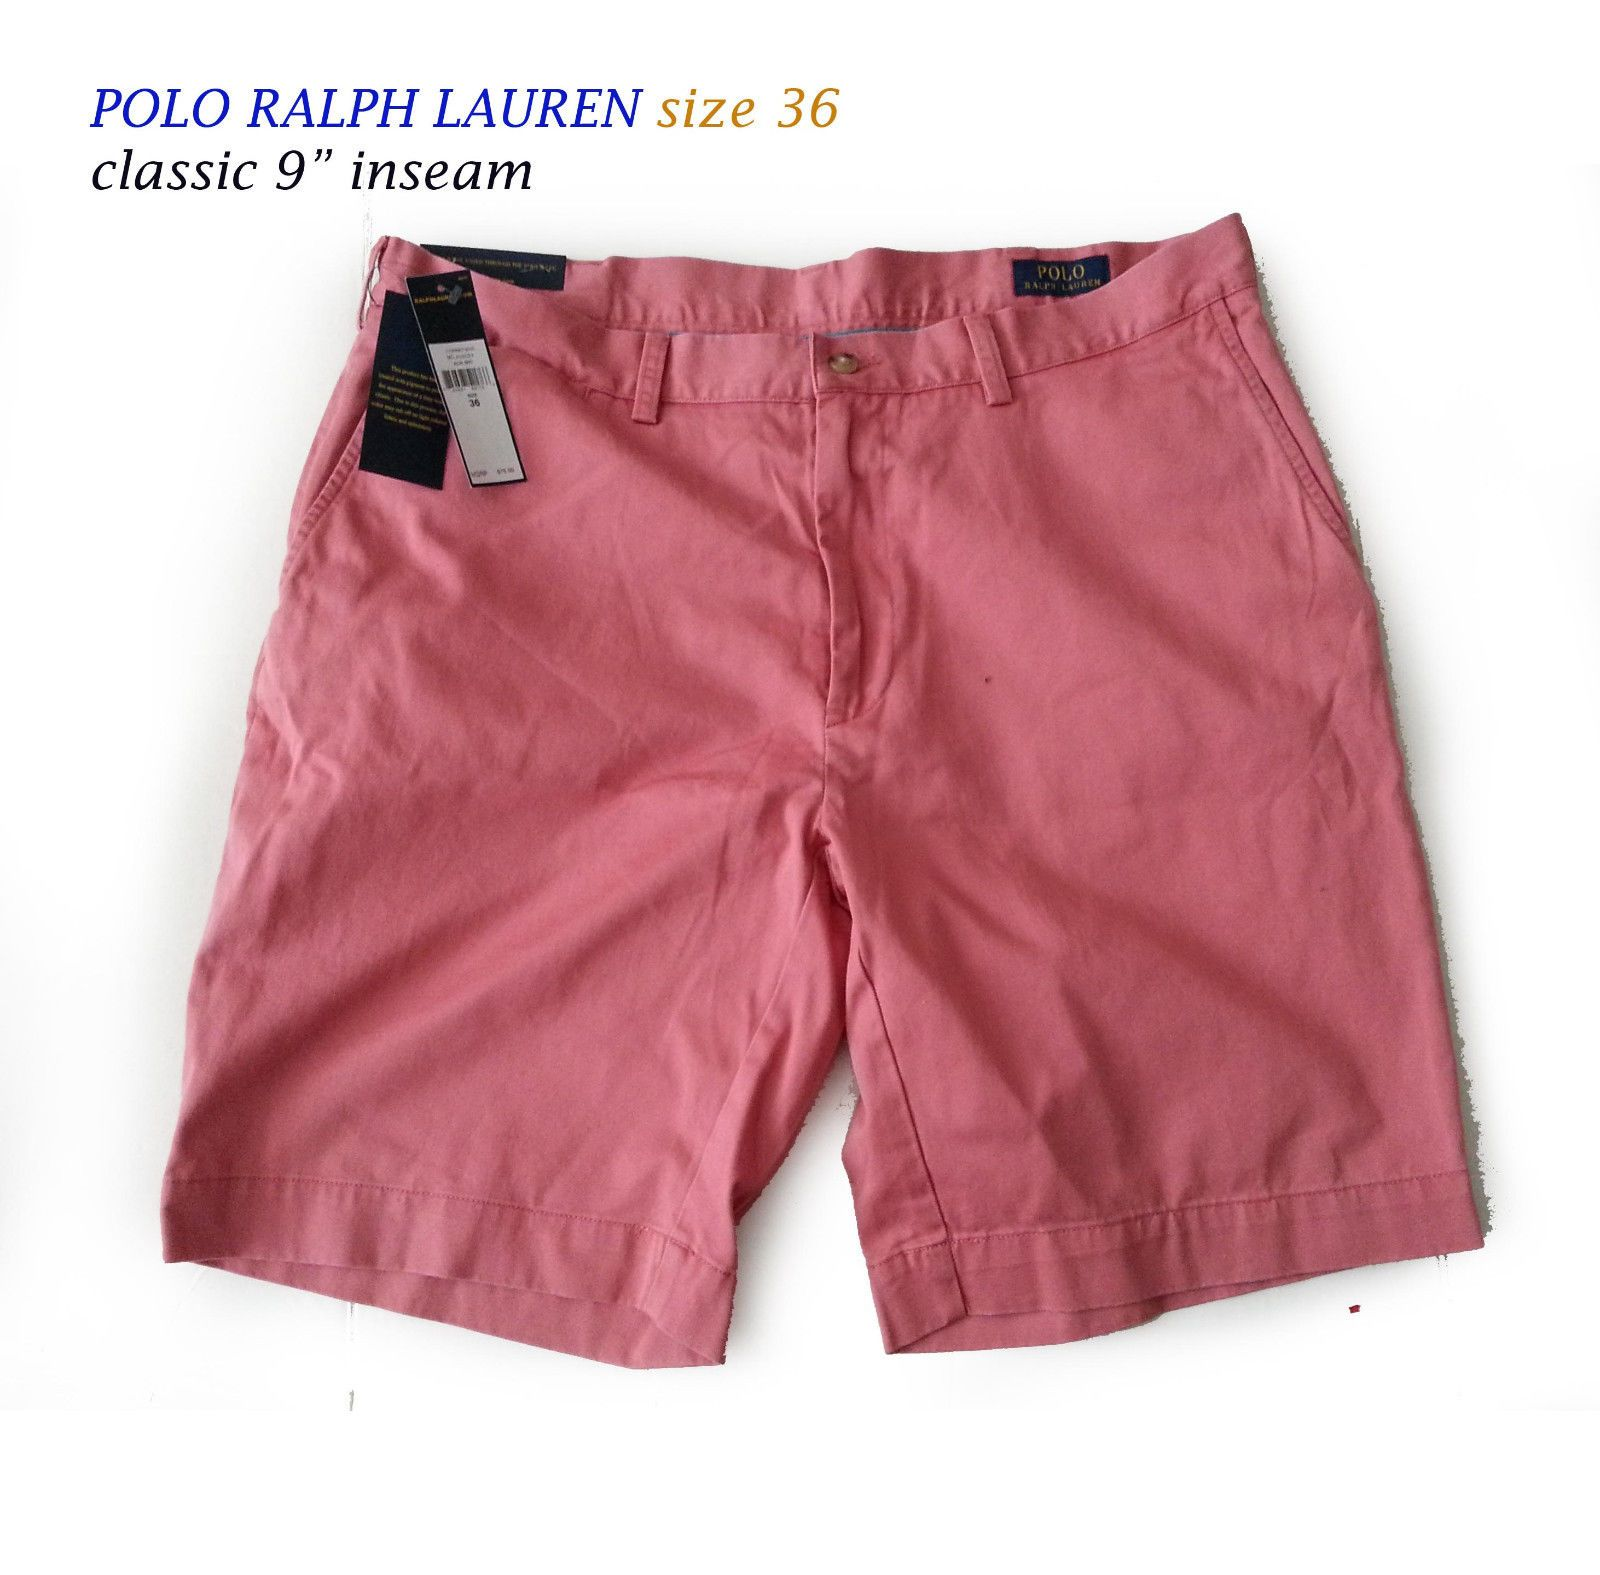 POLO Ralph Lauren Men Size 36 classic cotton shorts 9